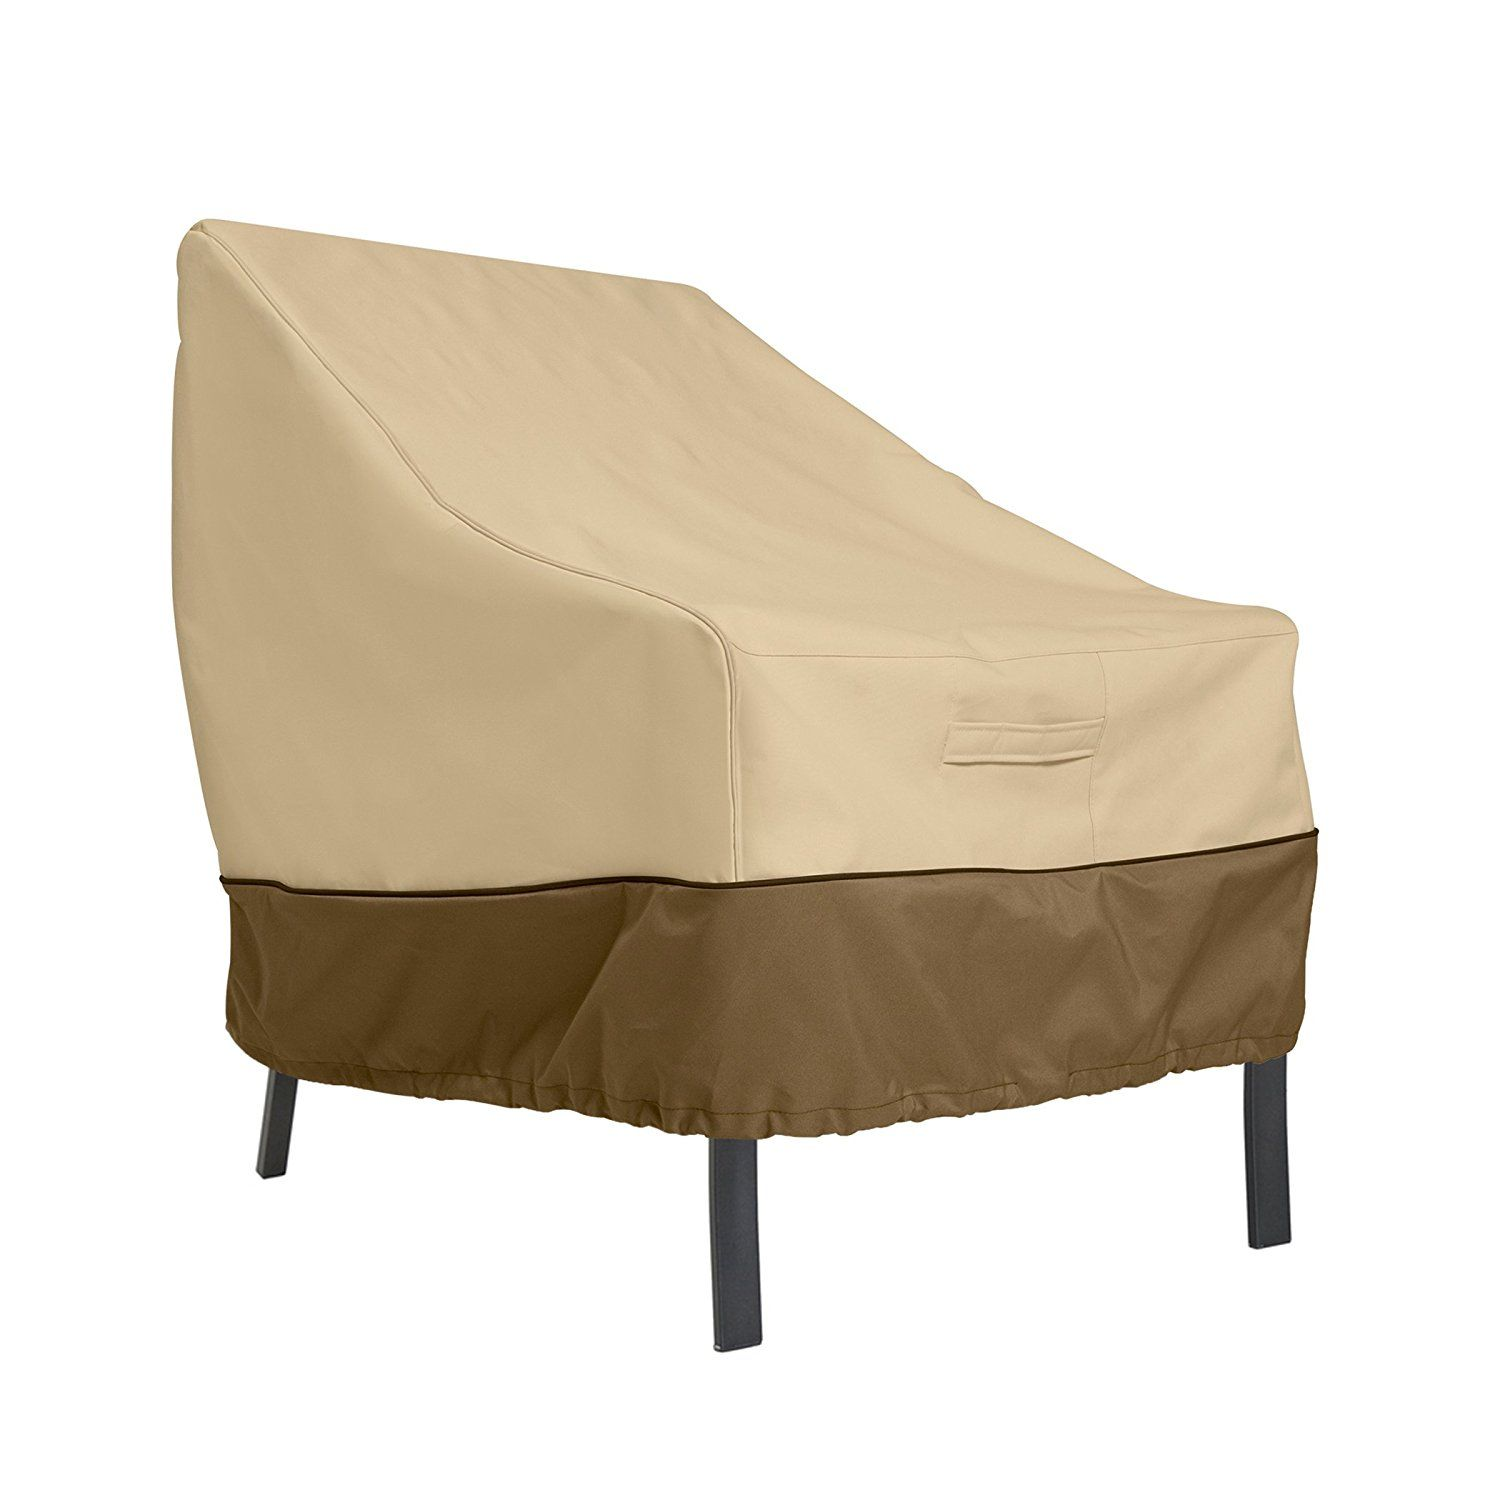 Amazon Com Classic Accessories Veranda Patio Lounge Chair Club Chair Cover Durable And Water Resistant Outdoor Furniture Cove Outdoor Furniture Covers Patio Chairs Patio Furniture Covers